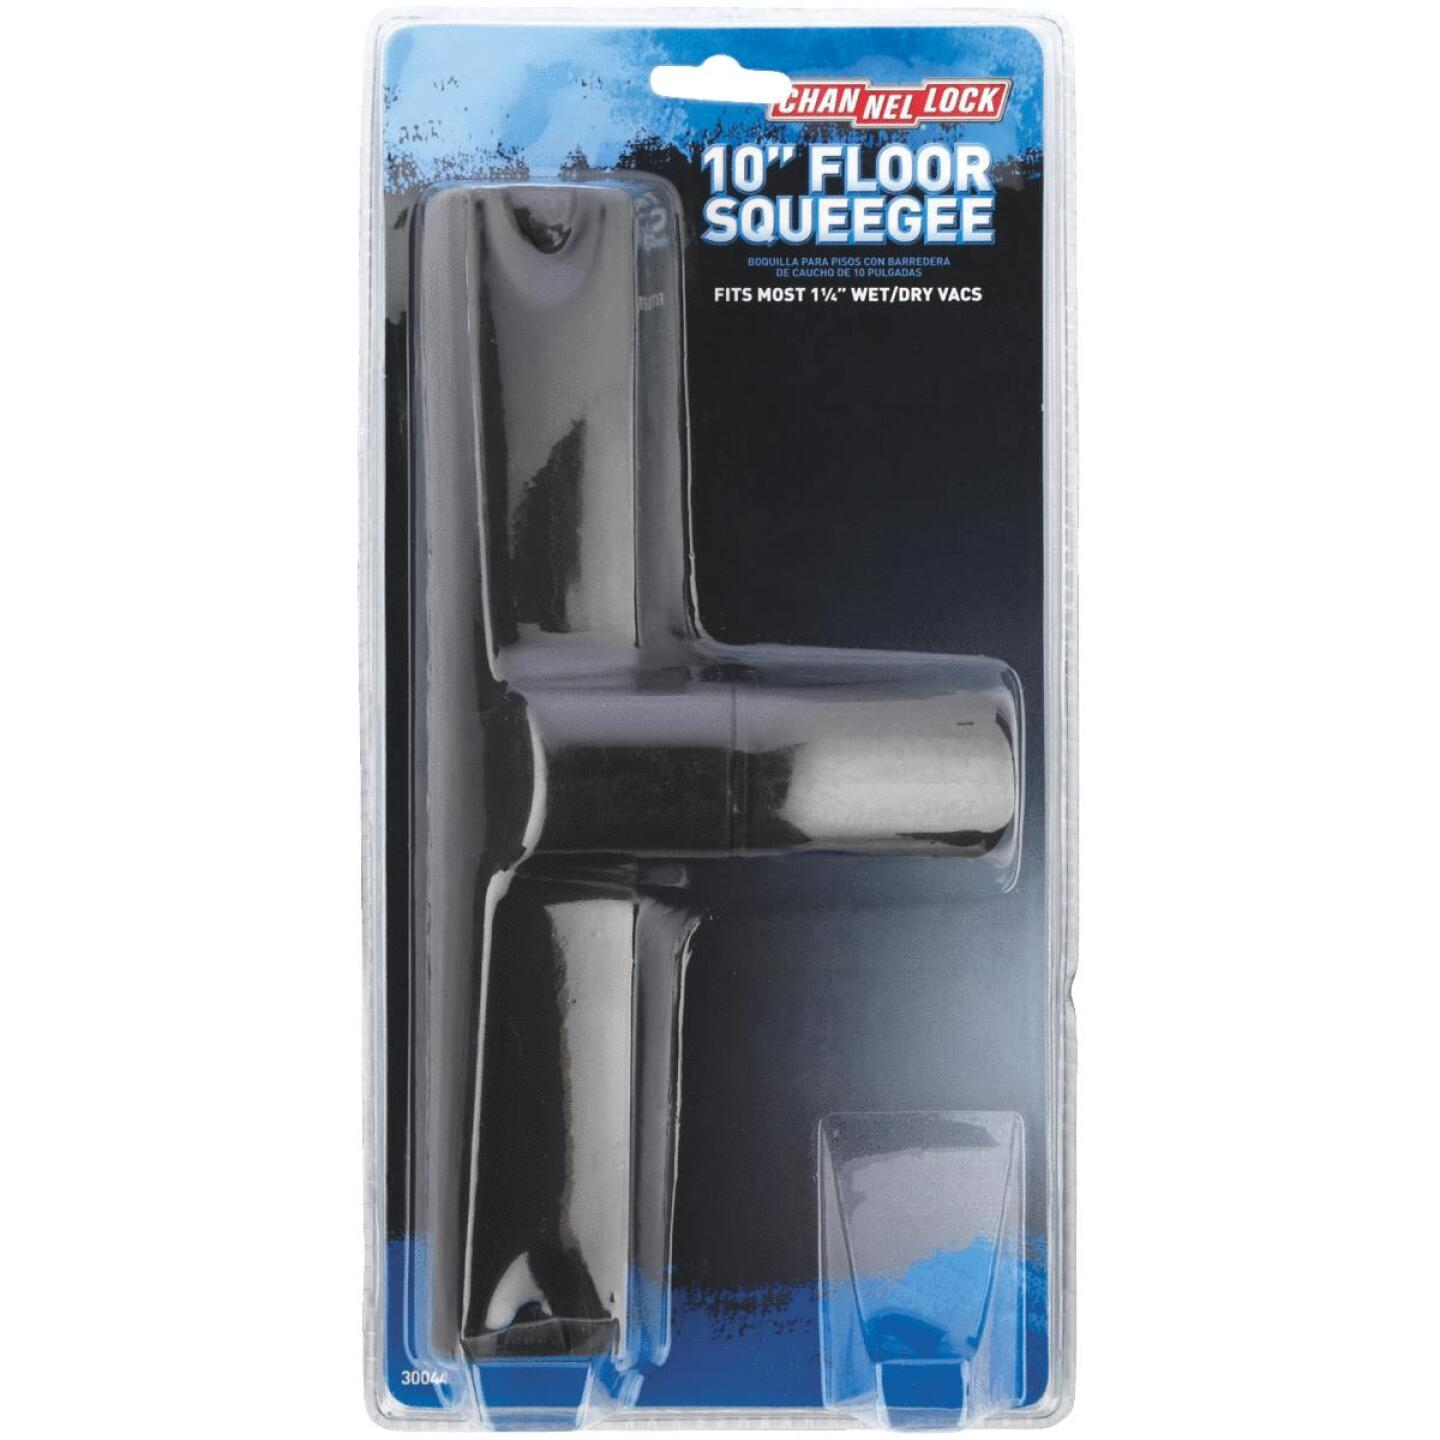 Channellock 1-1/4 In. x 10 In. Black Plastic Squeegee Vacuum Nozzle Image 2